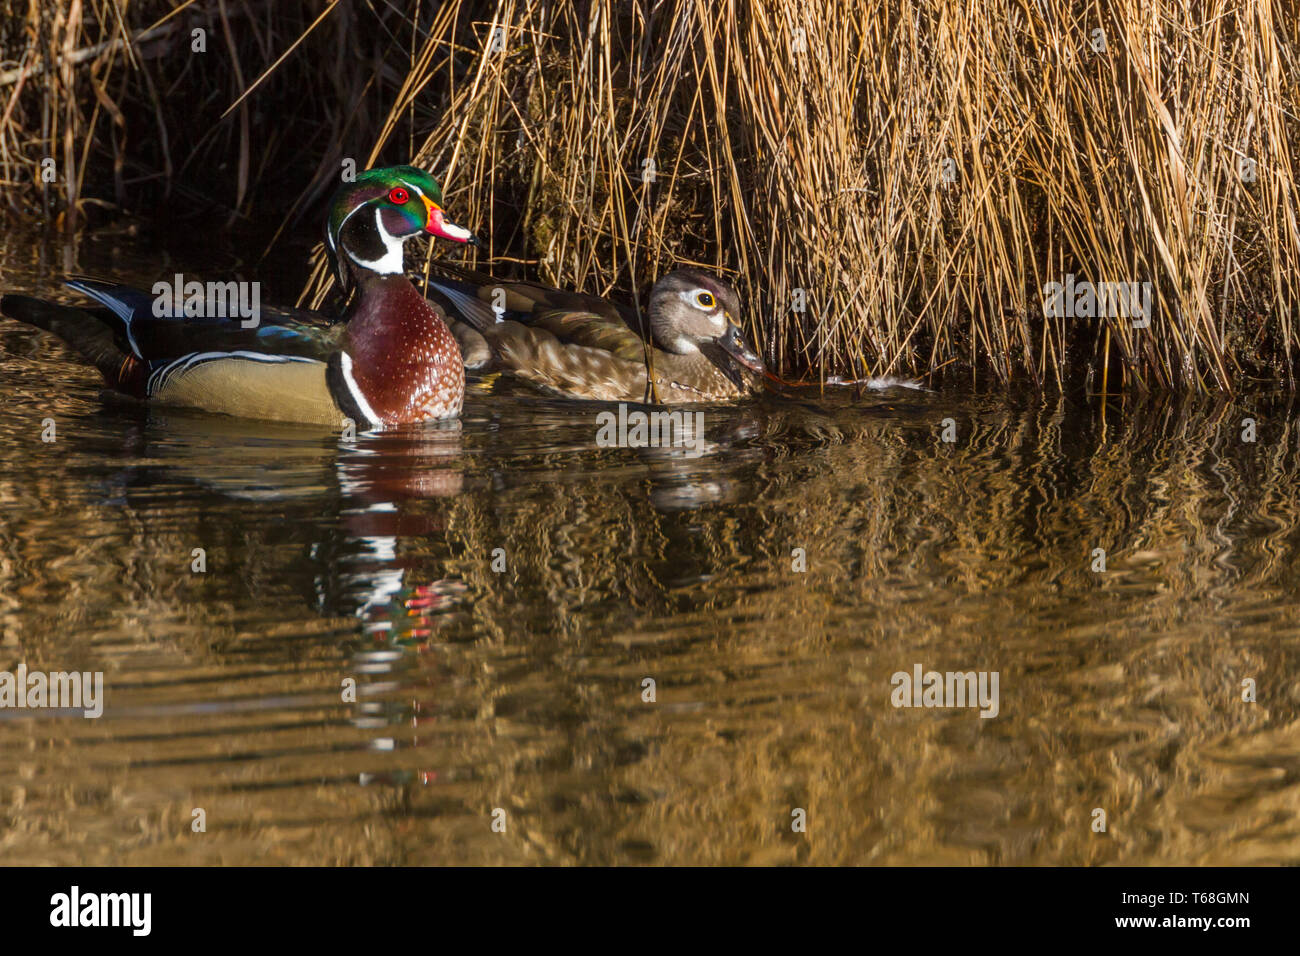 Colourful, beautiful male wood duck with female float along quietly in water at Inglewood Bird Sanctuary, Calgary, Canada Stock Photo